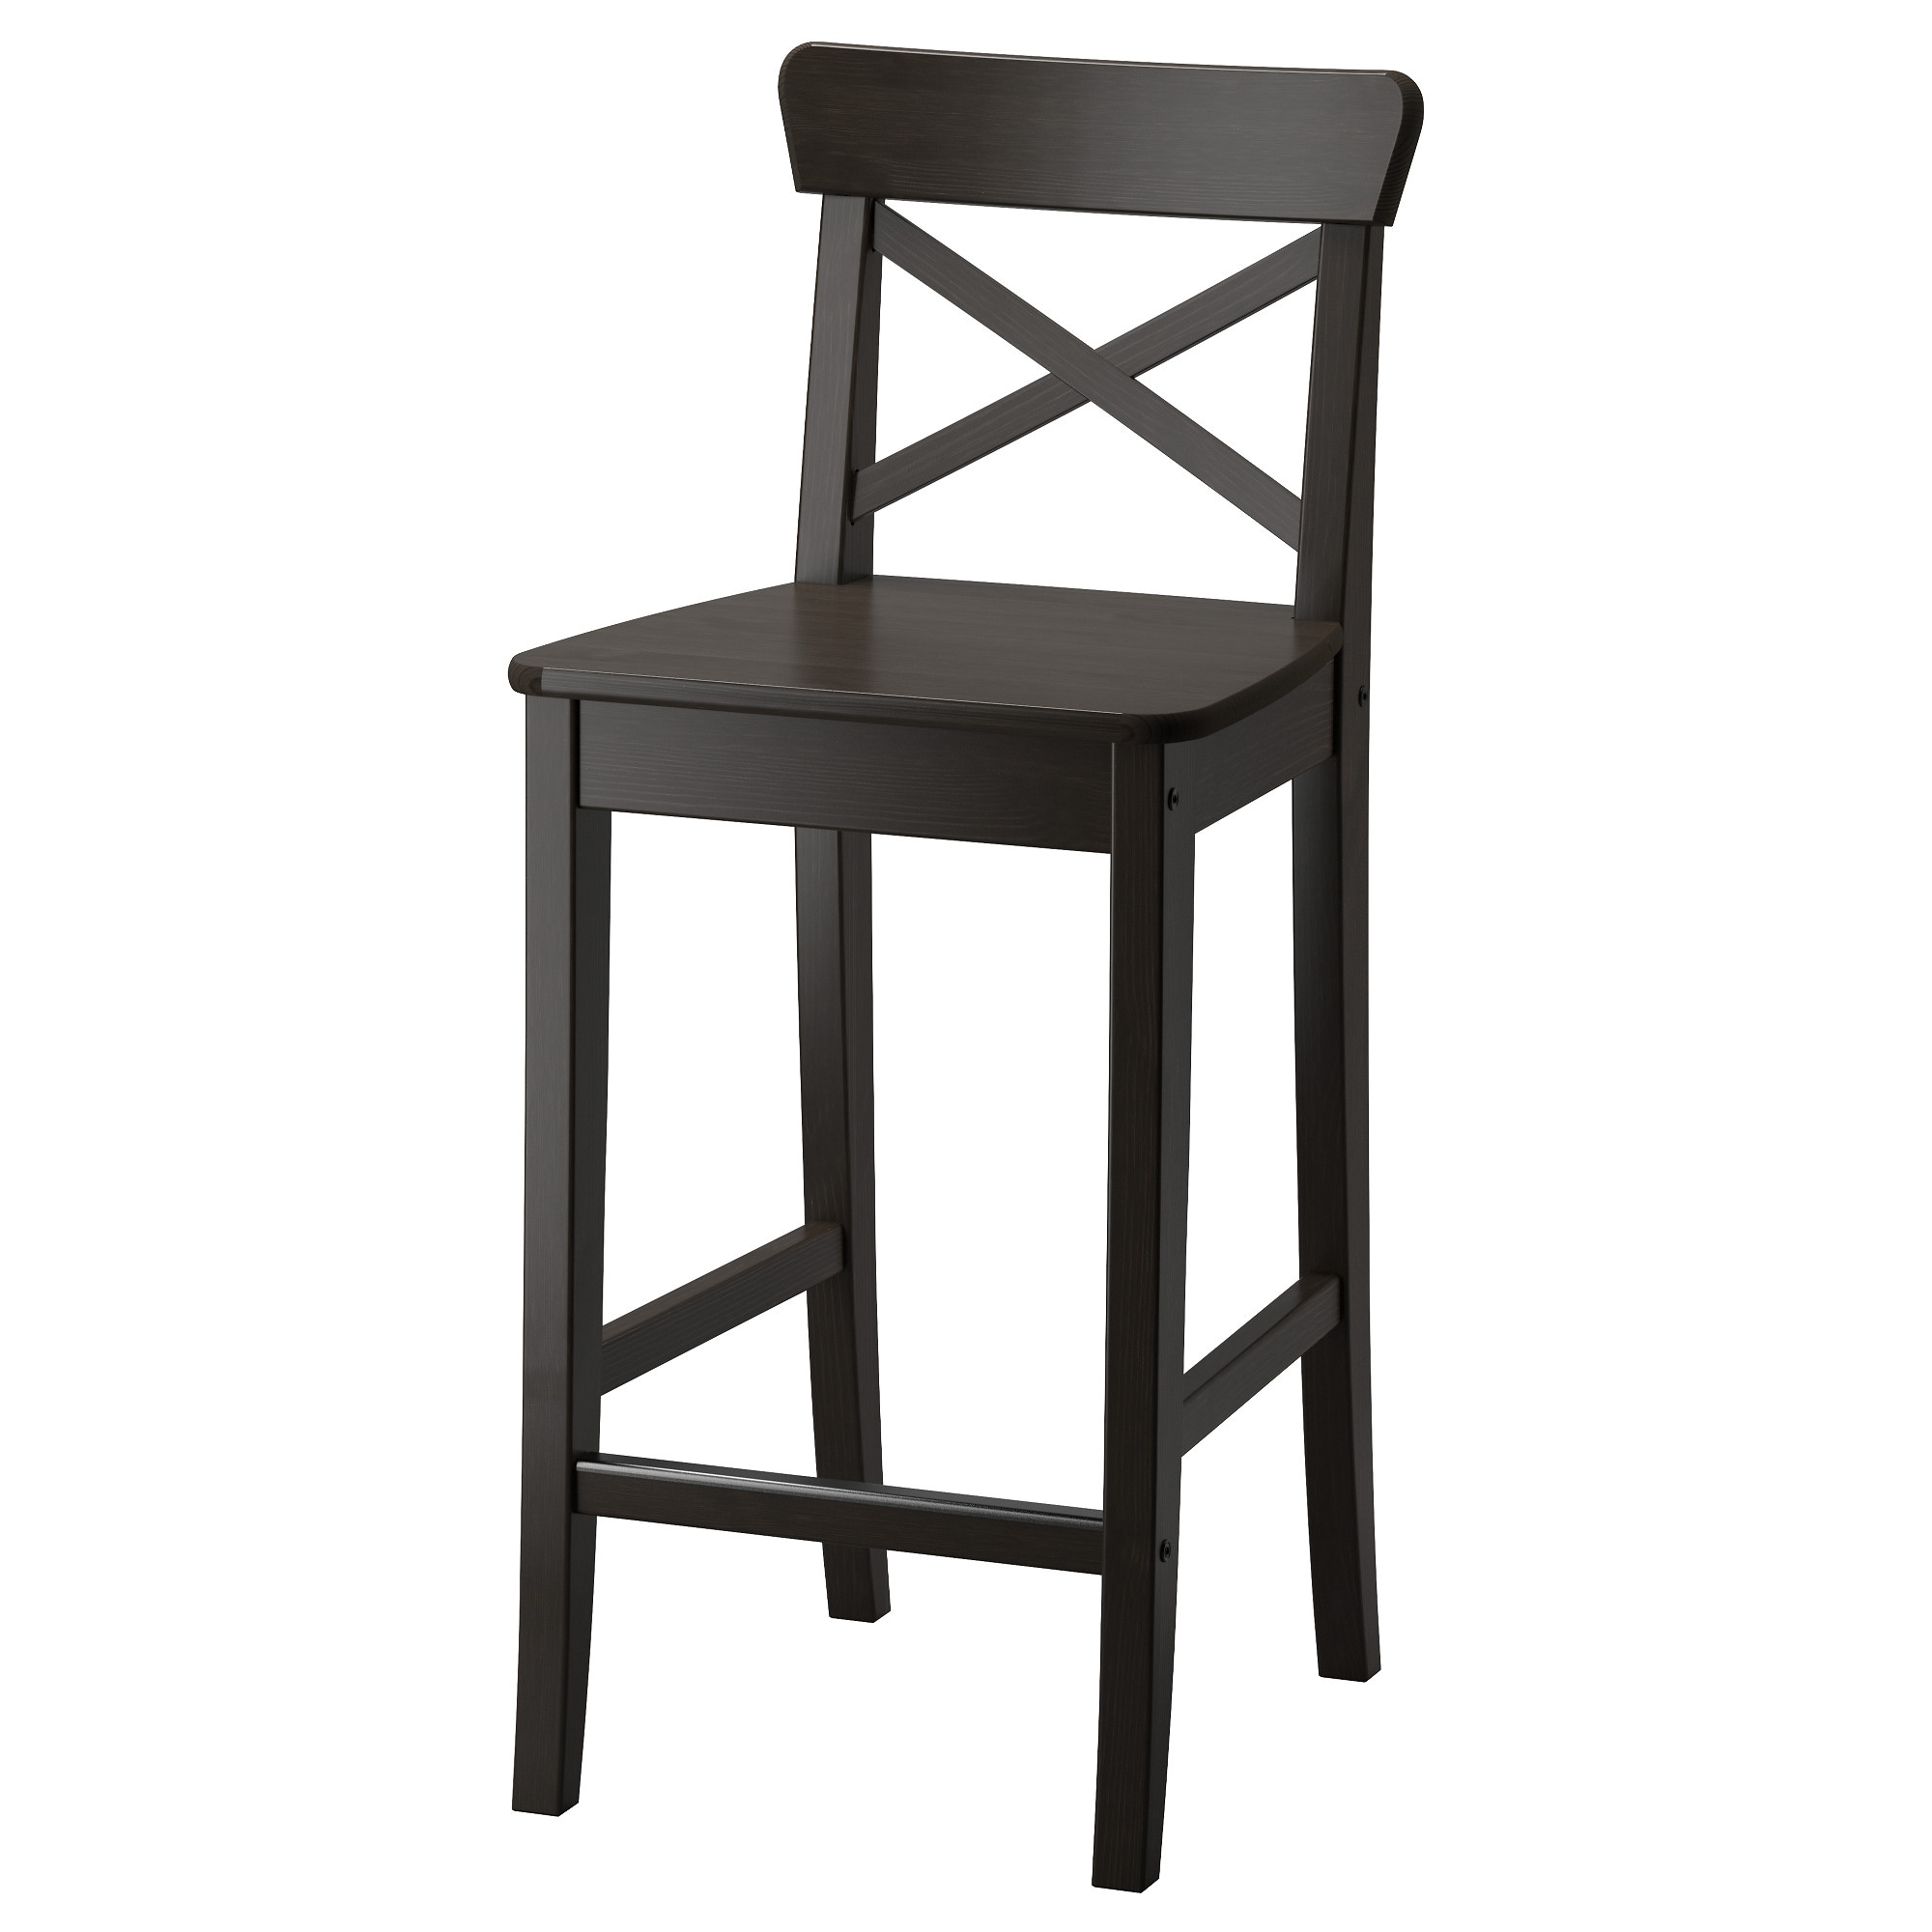 INGOLF bar stool with backrest brown-black Tested for 220 lb Width  sc 1 st  Ikea : bar stool kitchen table - islam-shia.org